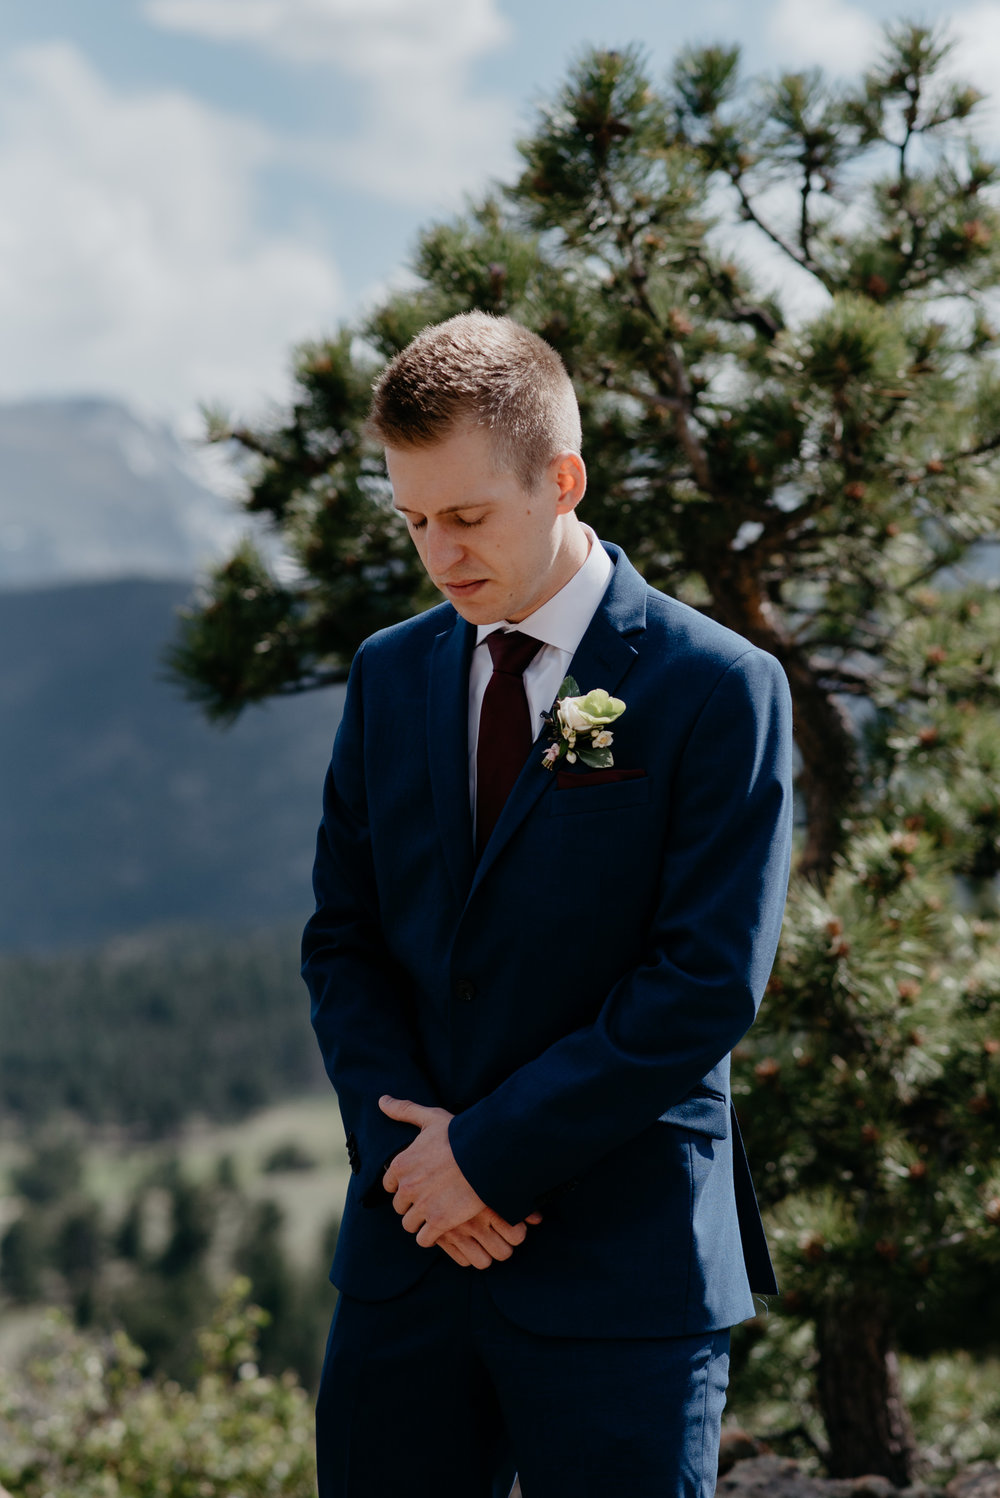 3M Curve, Estes Park. Rocky Mountain National Park elopement photography. Colorado wedding photography.